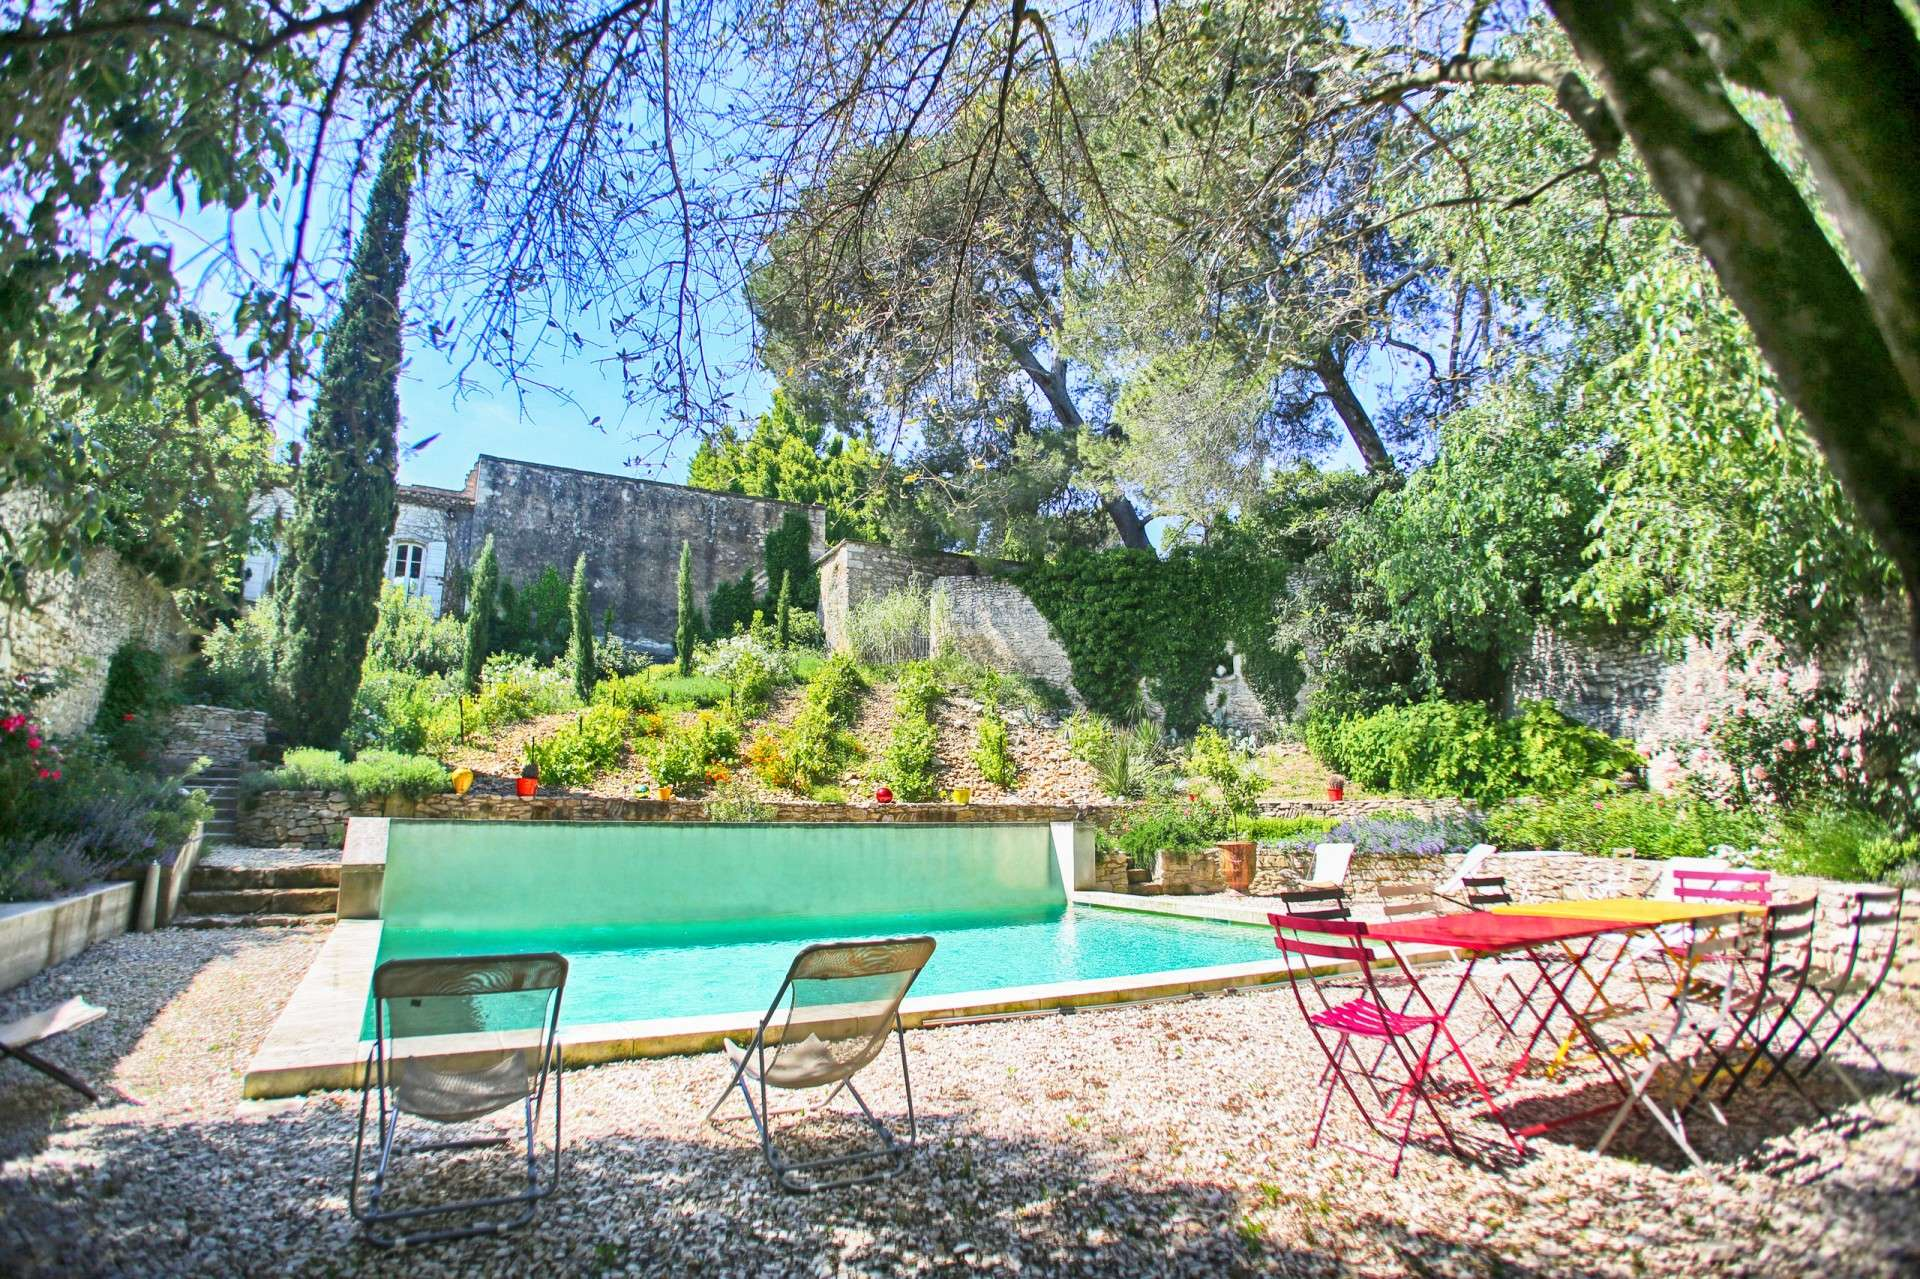 Luxury vacation rentals europe - France - Provence ih - Avi gnon - Le Viguier - Image 1/19